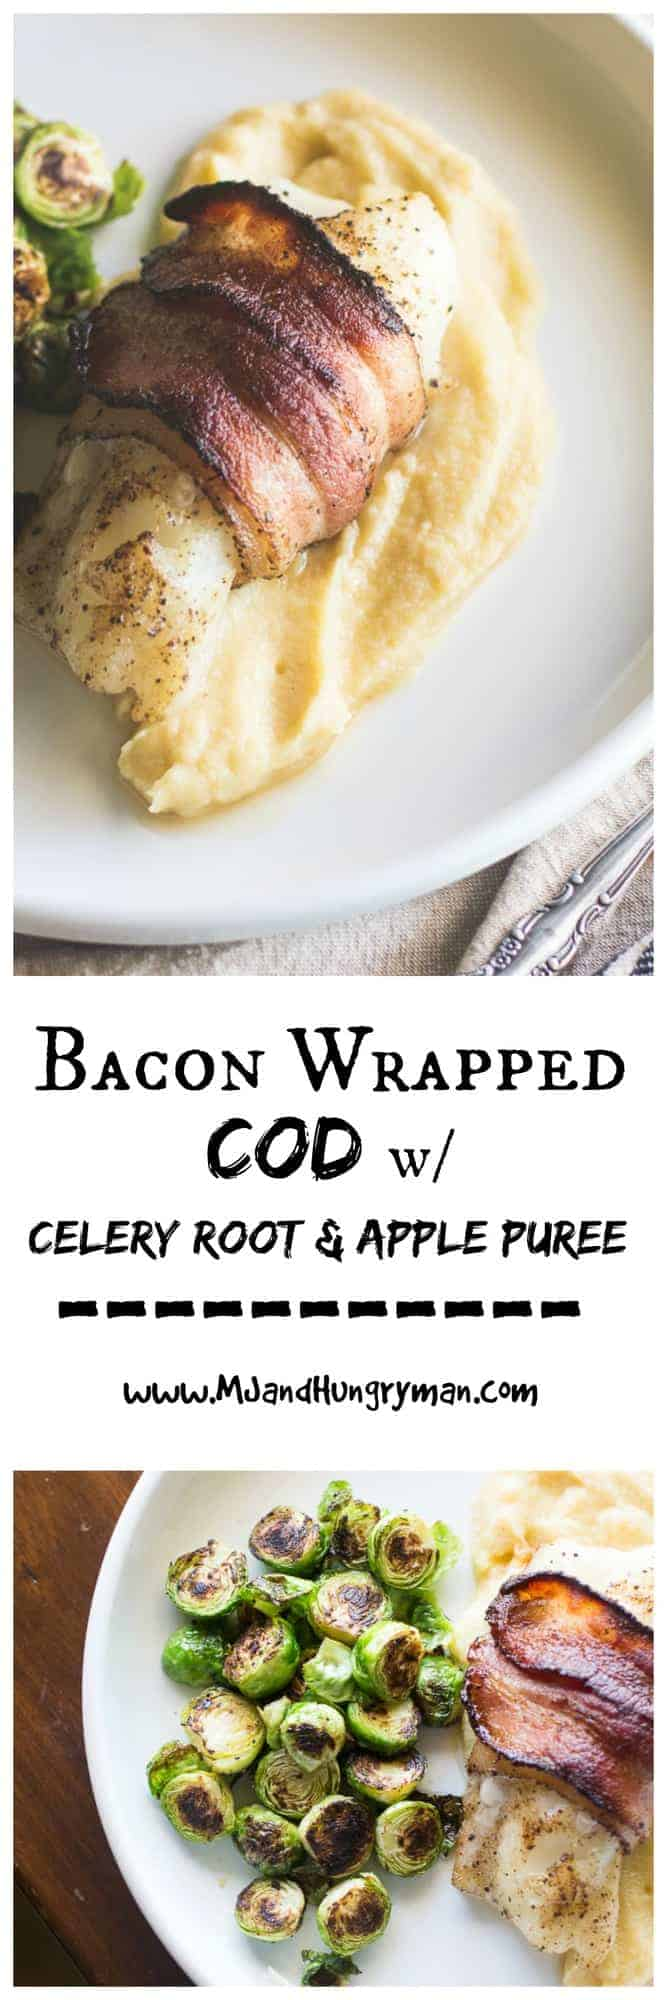 Bacon Wrapped Cod with Celery Root and Apple Puree - MJ and Hungryman ...